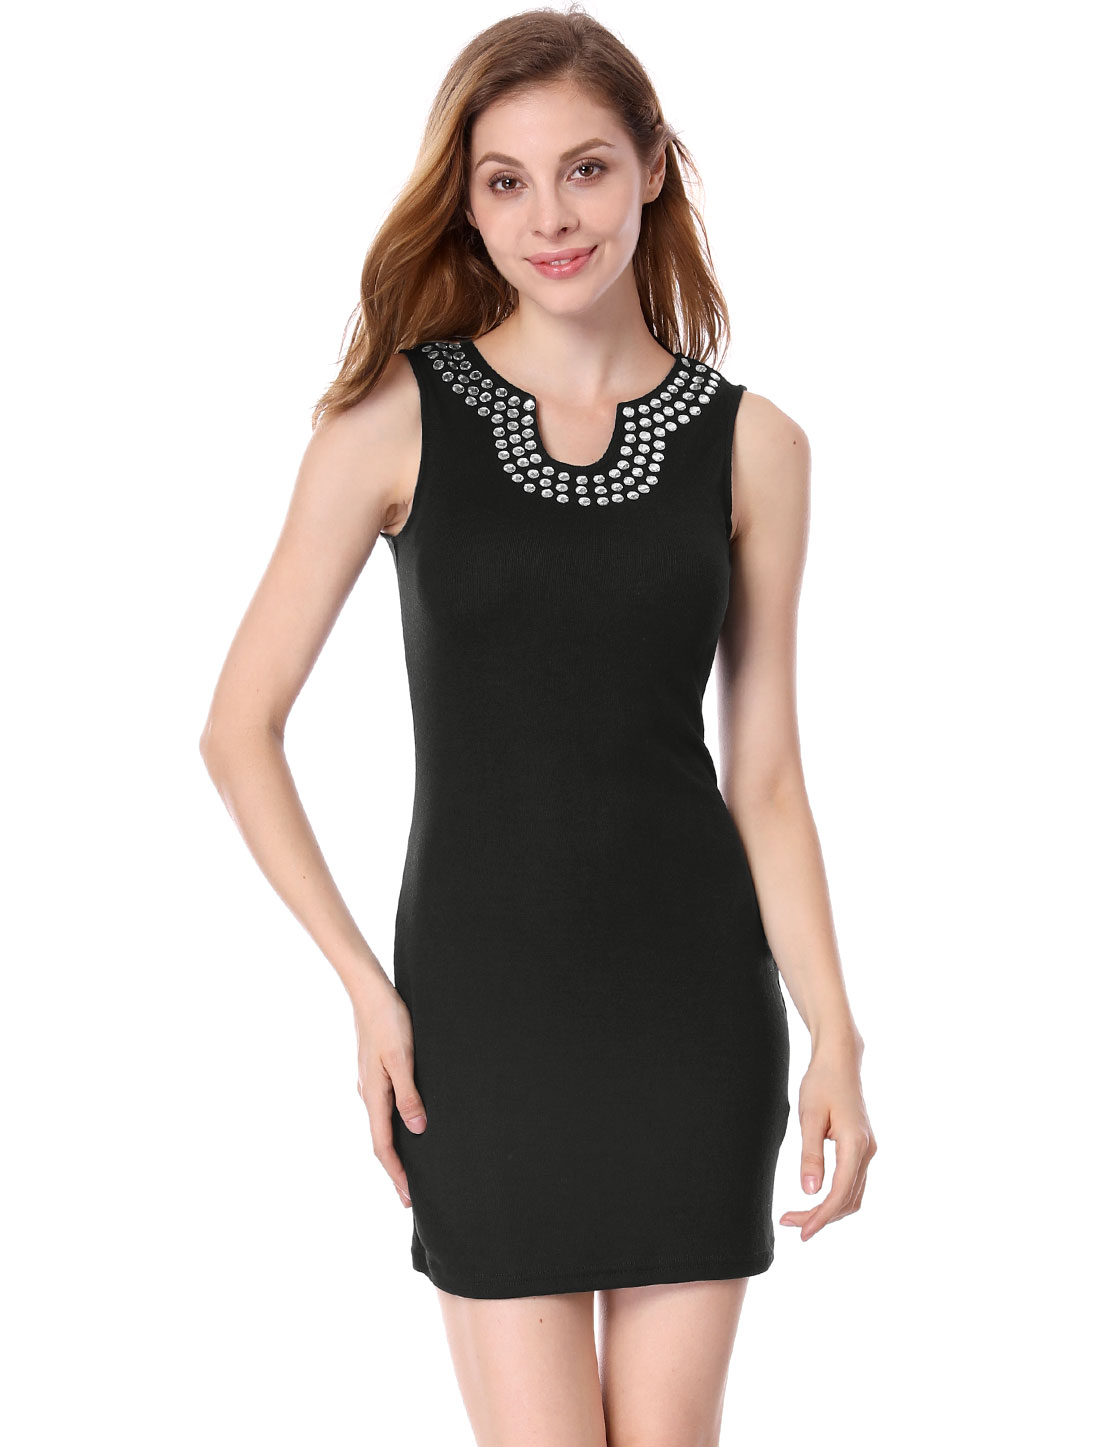 Women Sleeveless Split Neck Beads Unlined Casual Sheath Dress Black XS